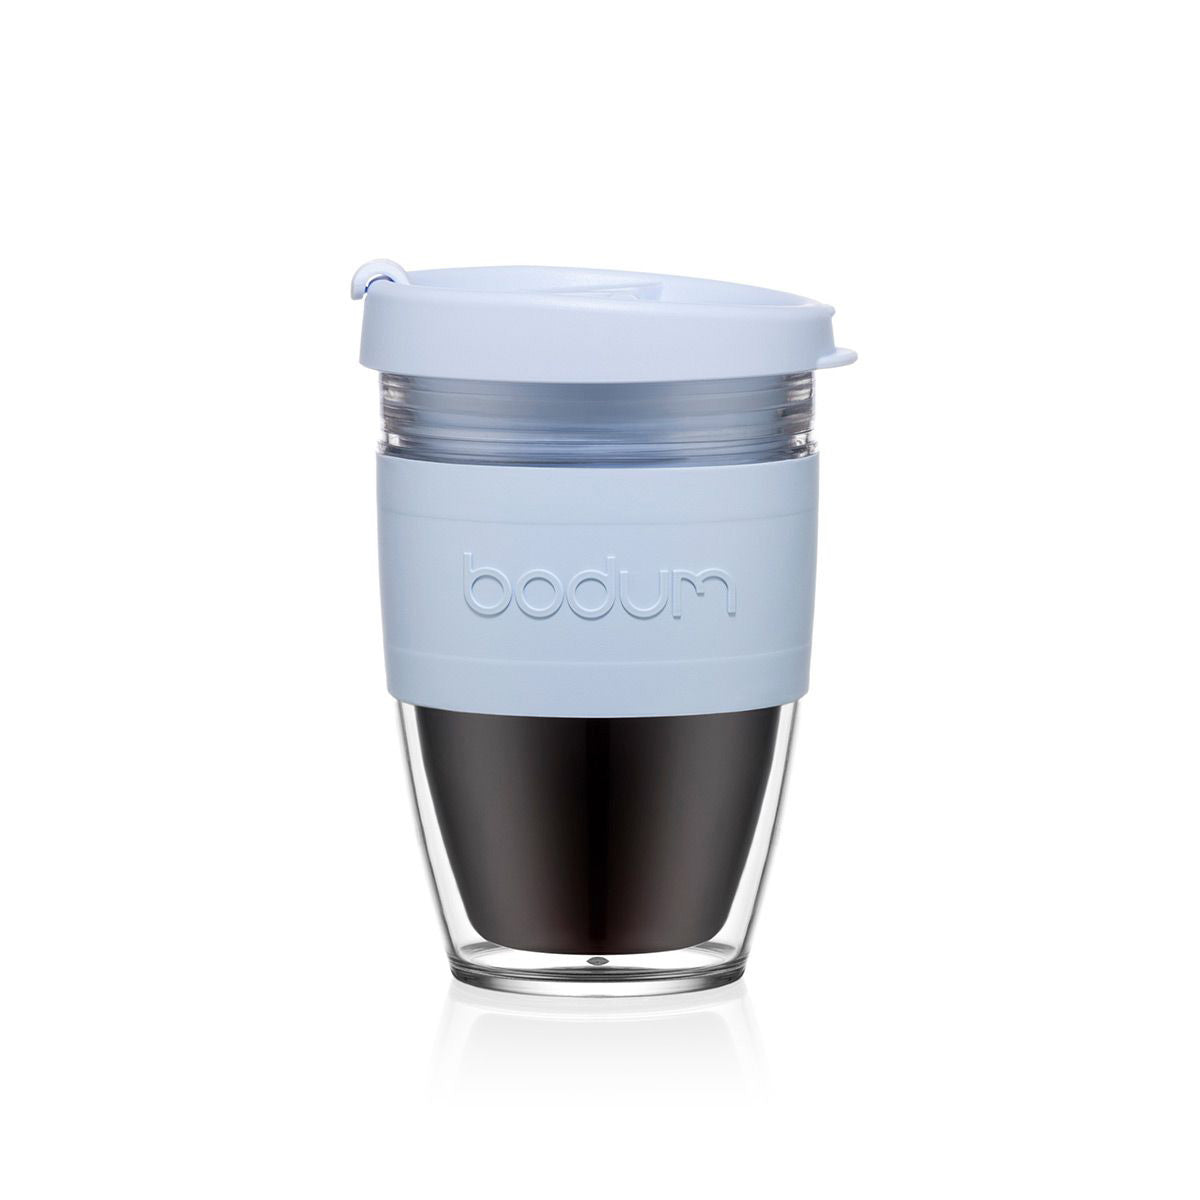 Bodum Joycup Travel Mug 8oz - Blue Moon - NEW 2020 Collection